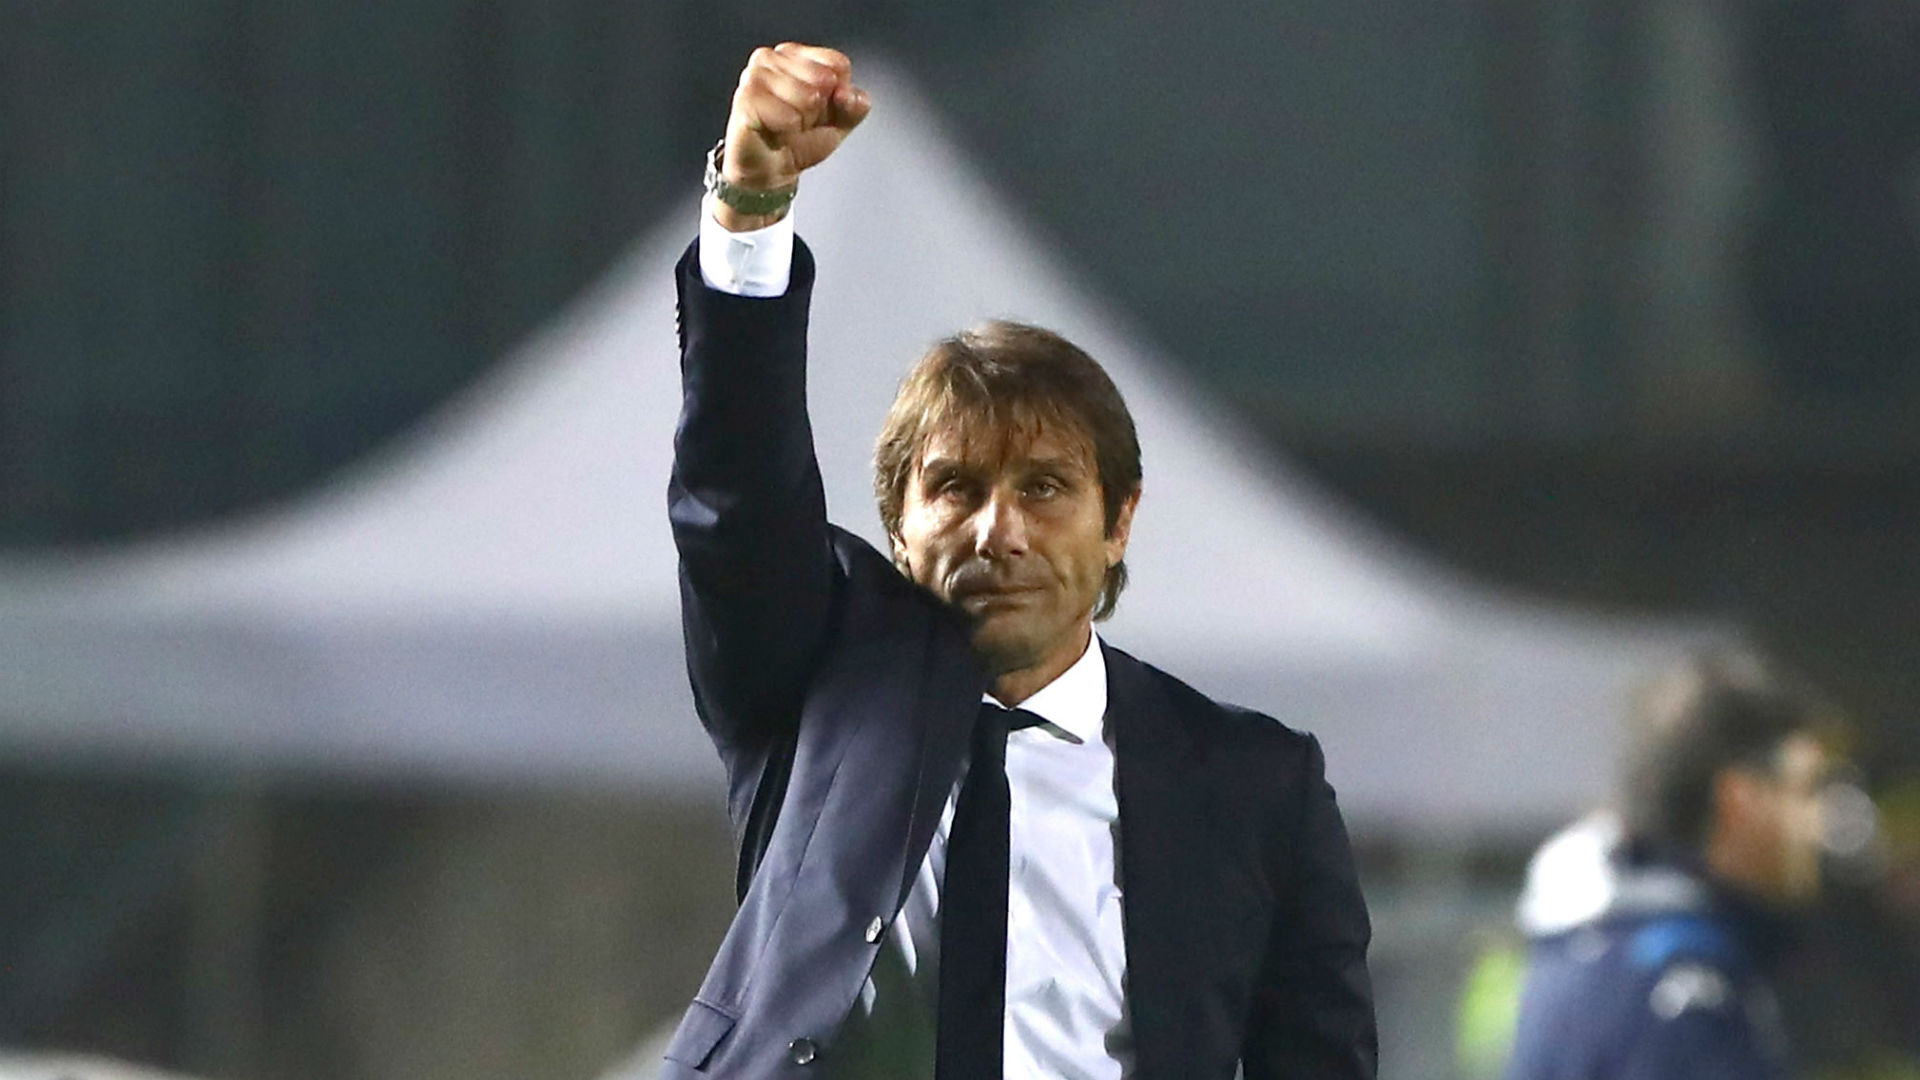 The fighting spirit shown by Inter's players after a 2-1 win over Bologna in Serie A impressed head coach Antonio Conte.